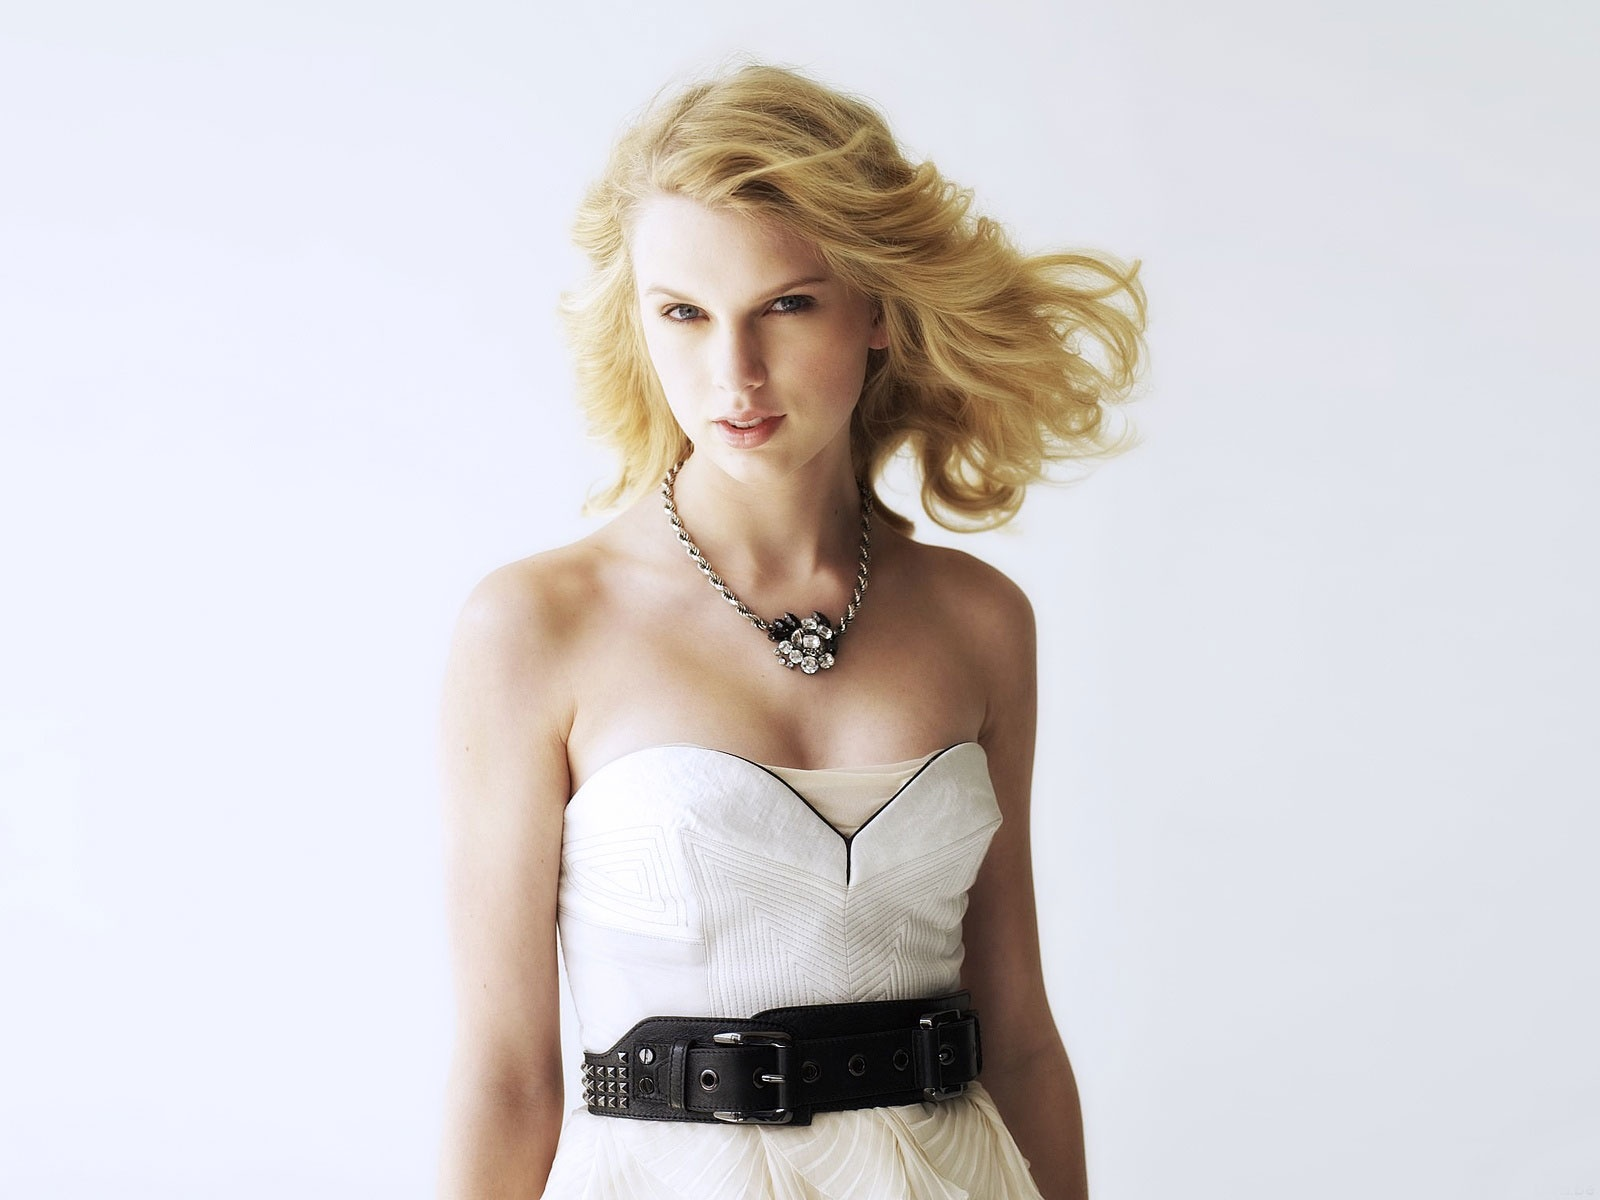 taylor swift wallpapers hd A2